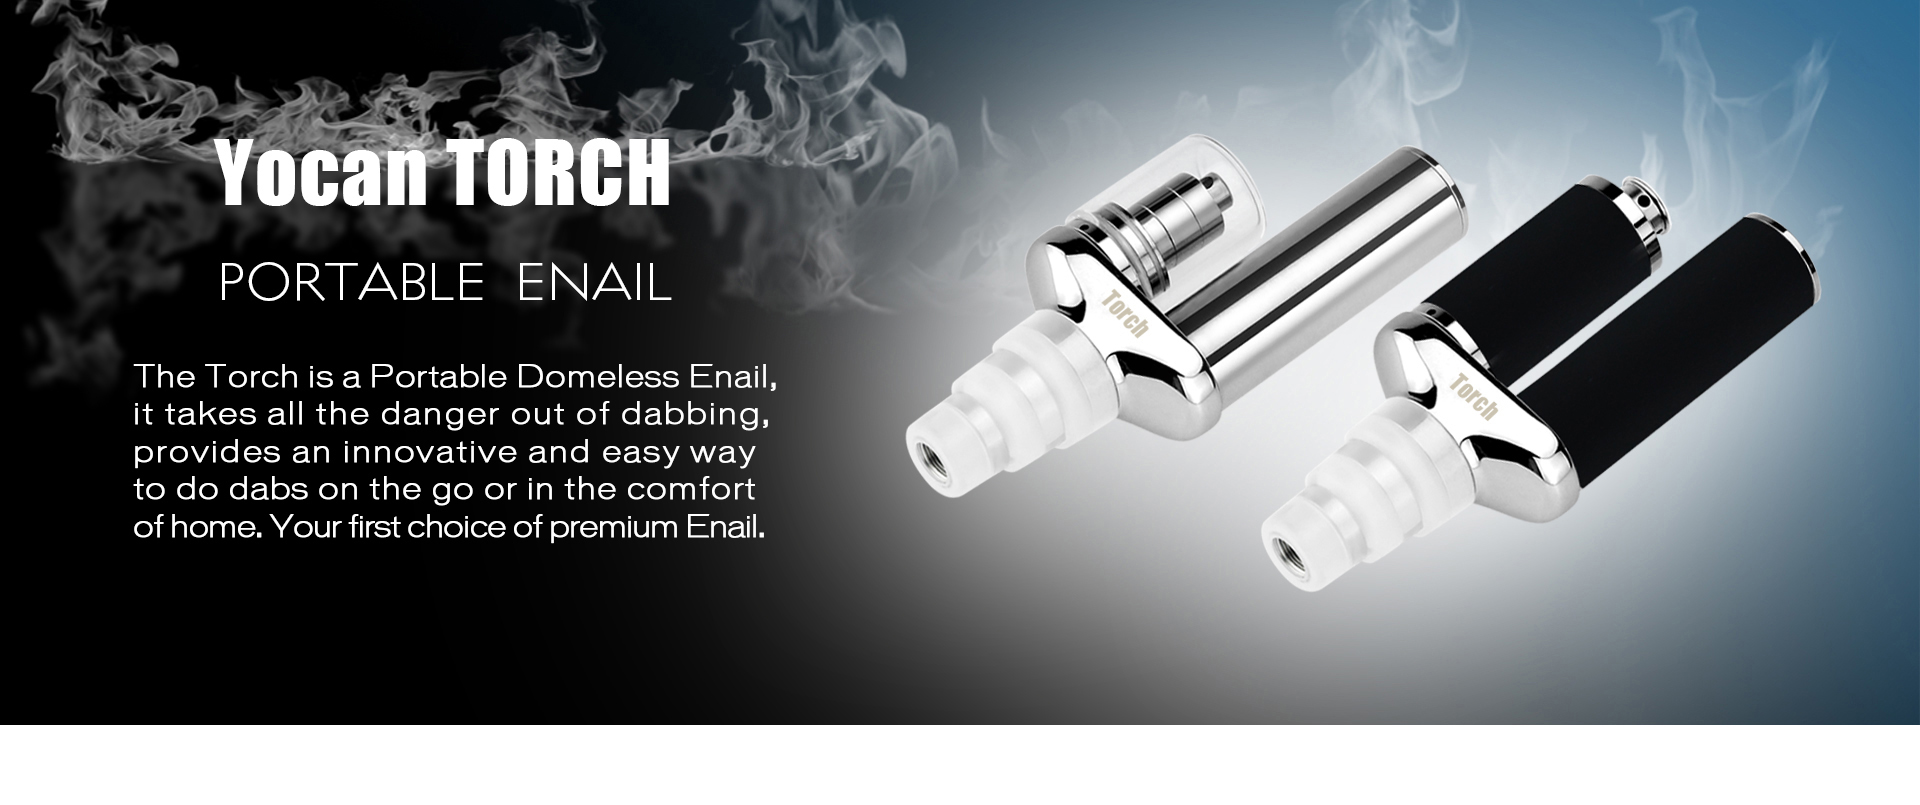 Order Yocan Torch Online